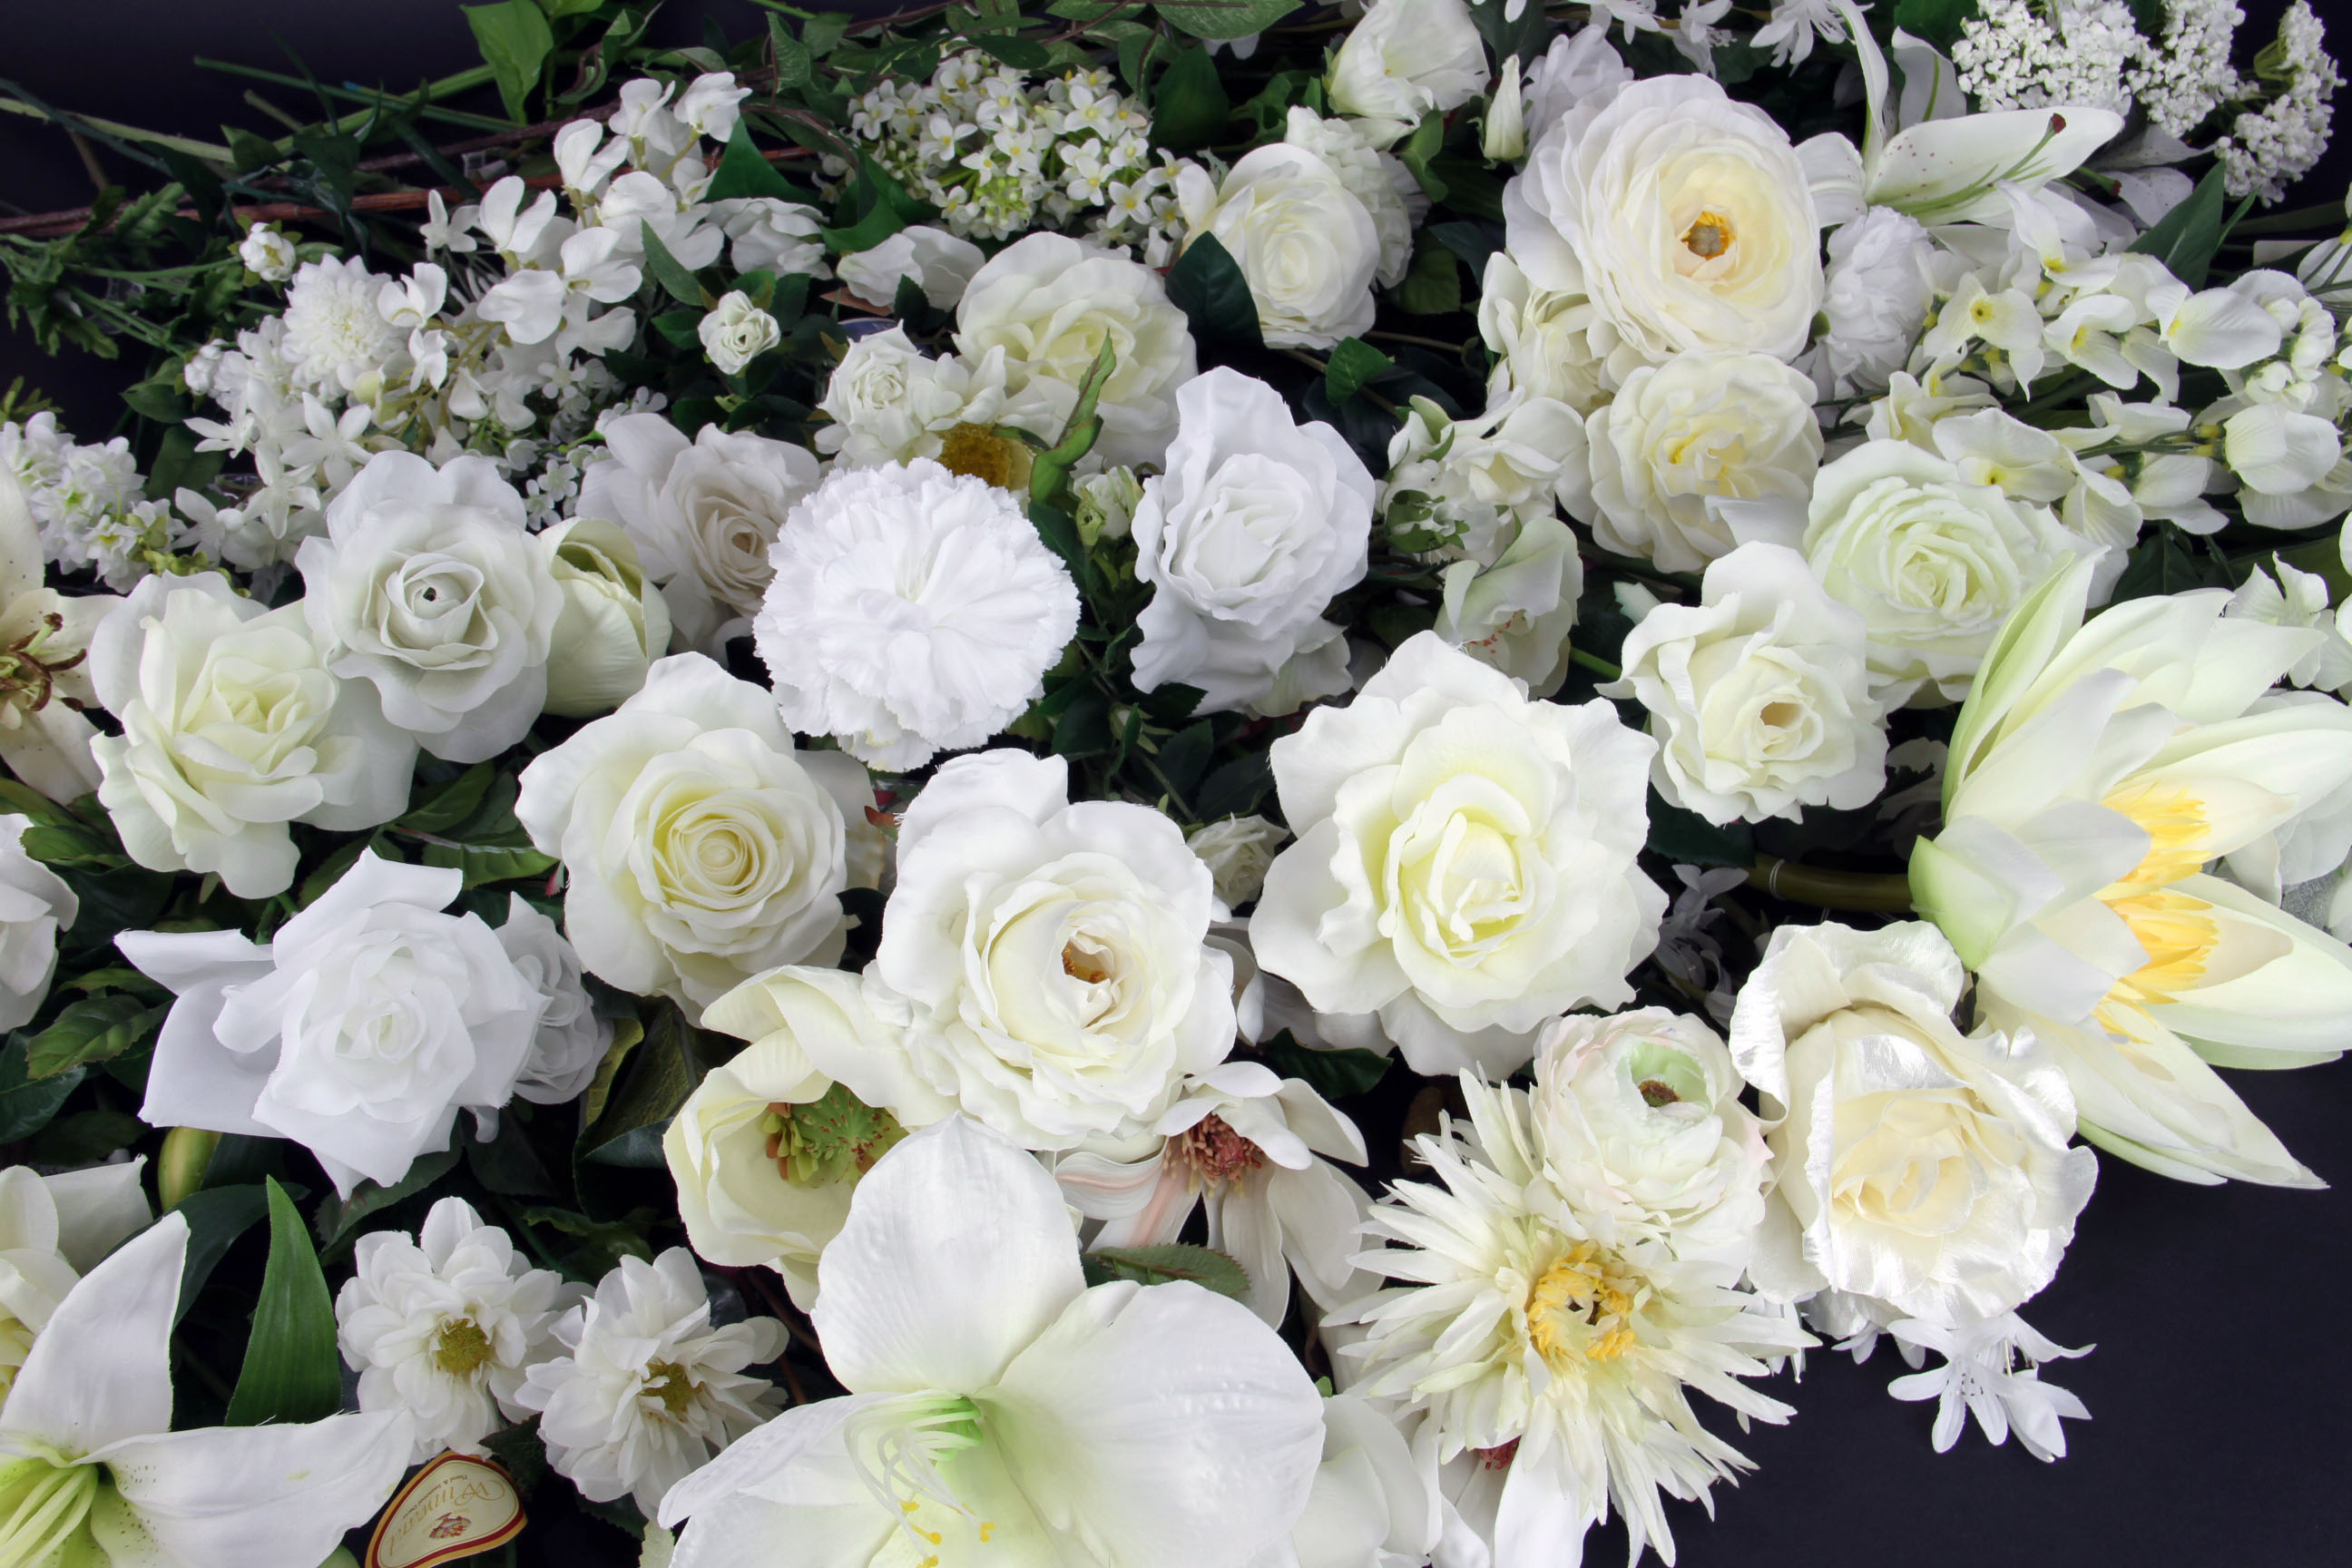 White silk flowers in store coupon for 52311 52811 shinoda white silk flowers at shinoda design center mightylinksfo